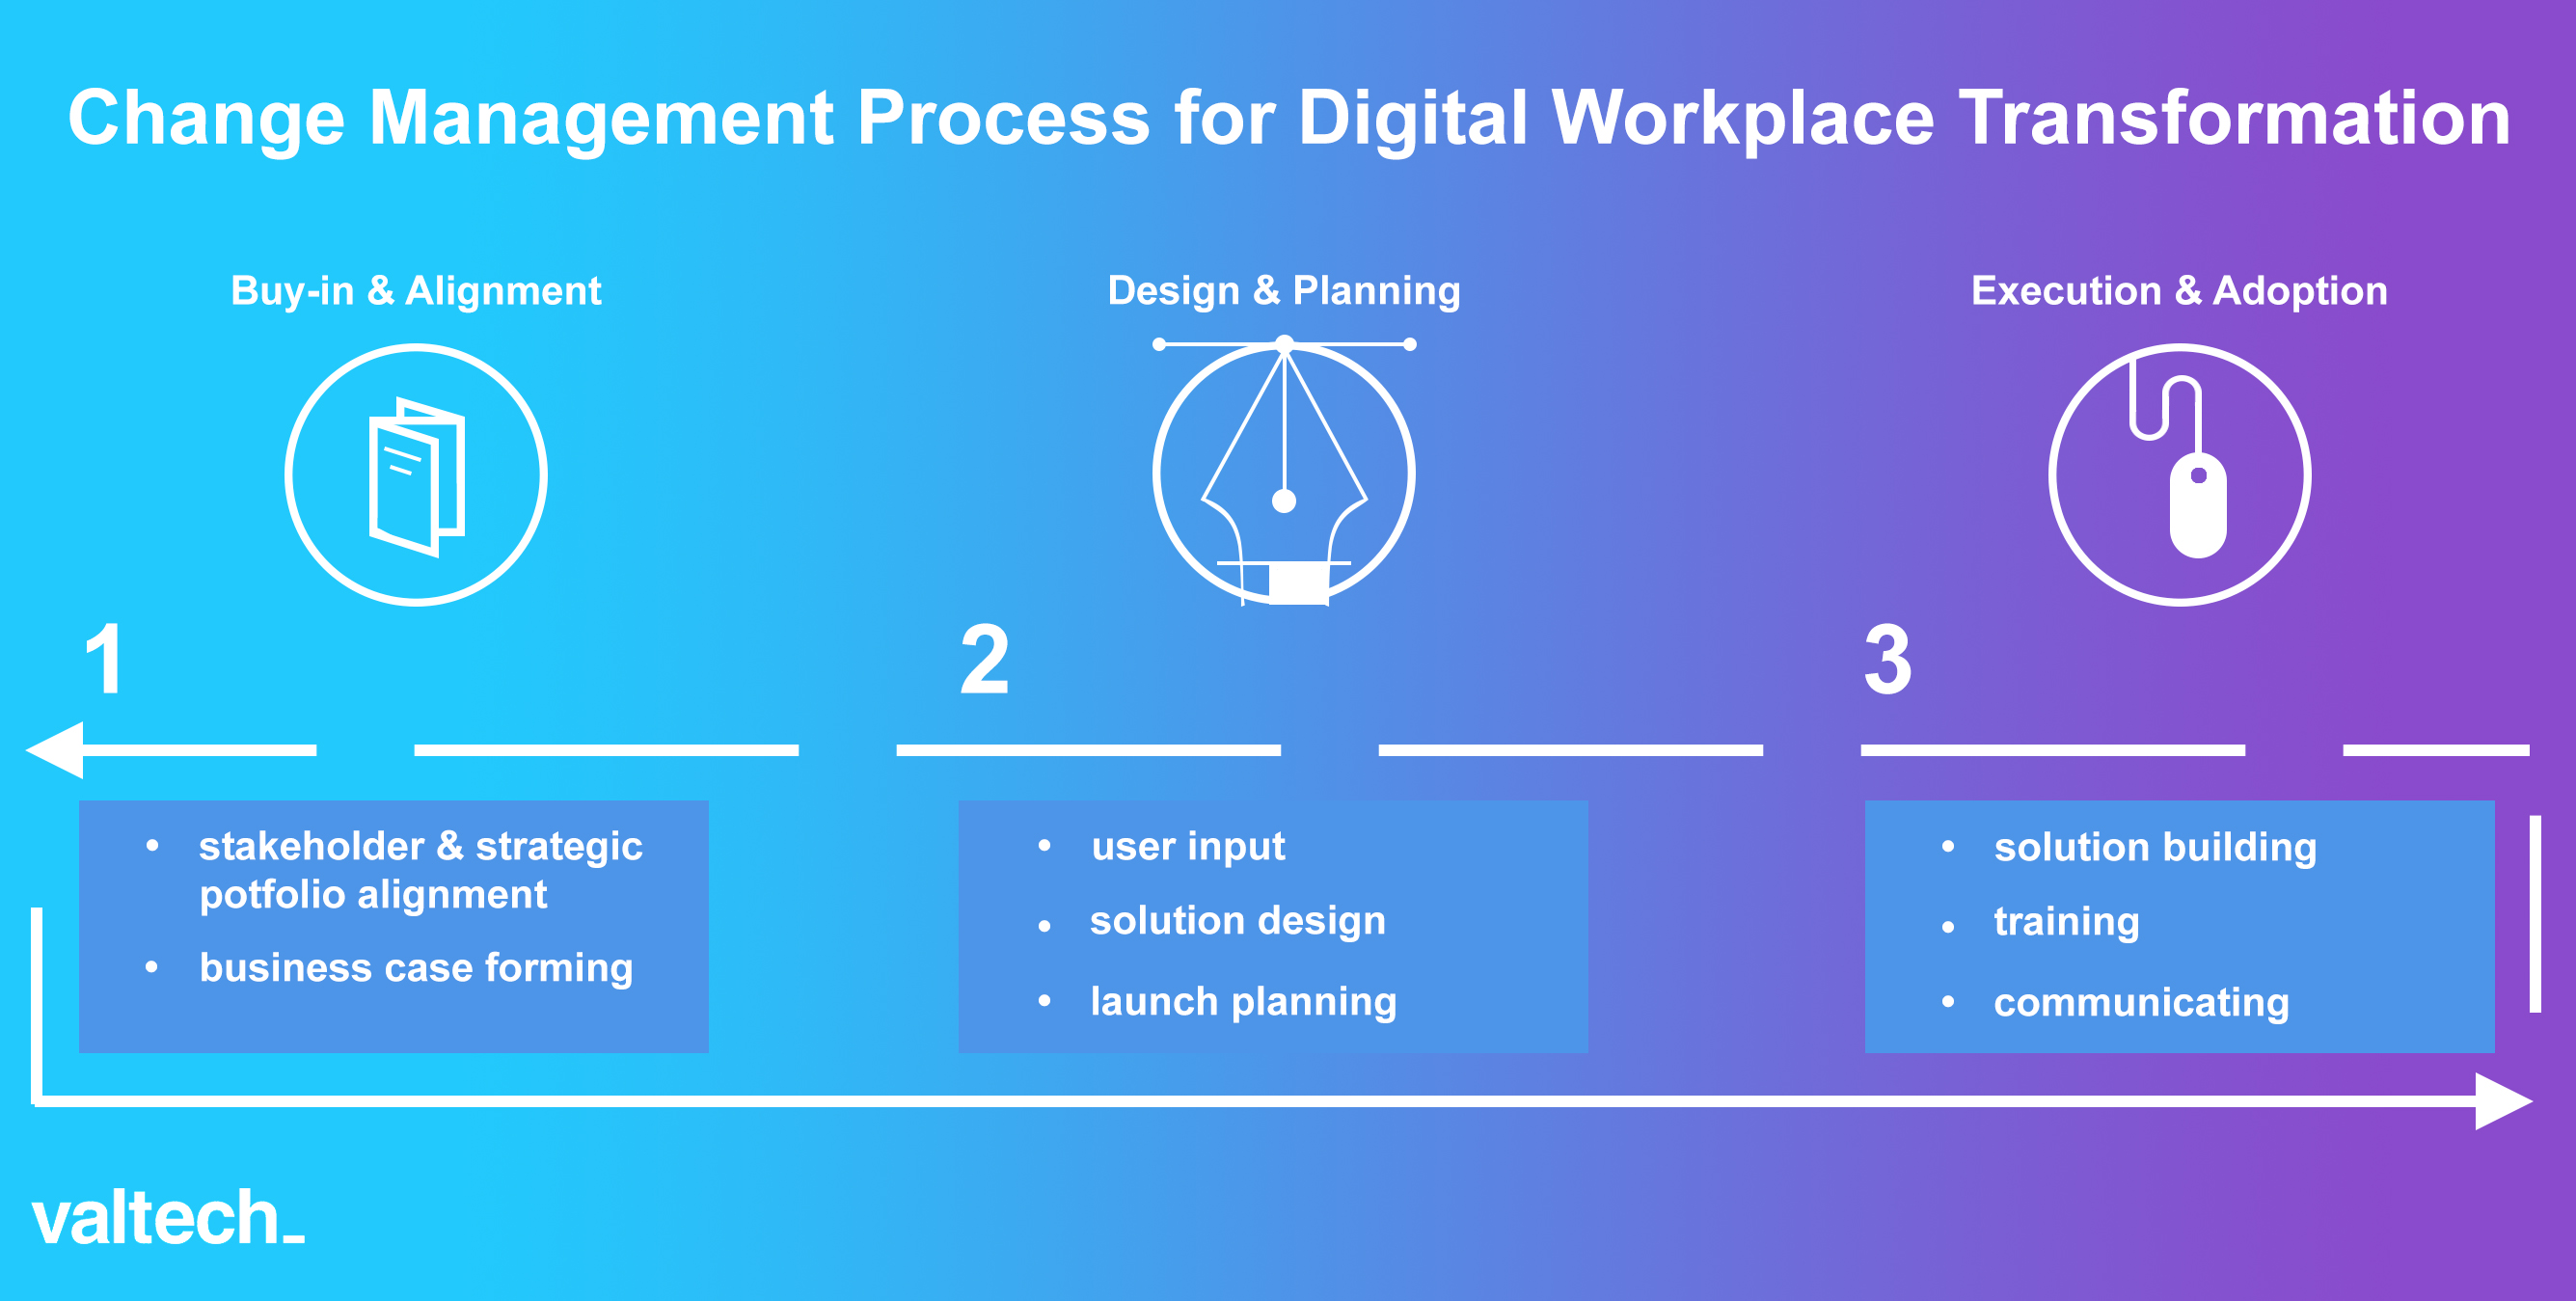 001change management process final UPDATED.jpg